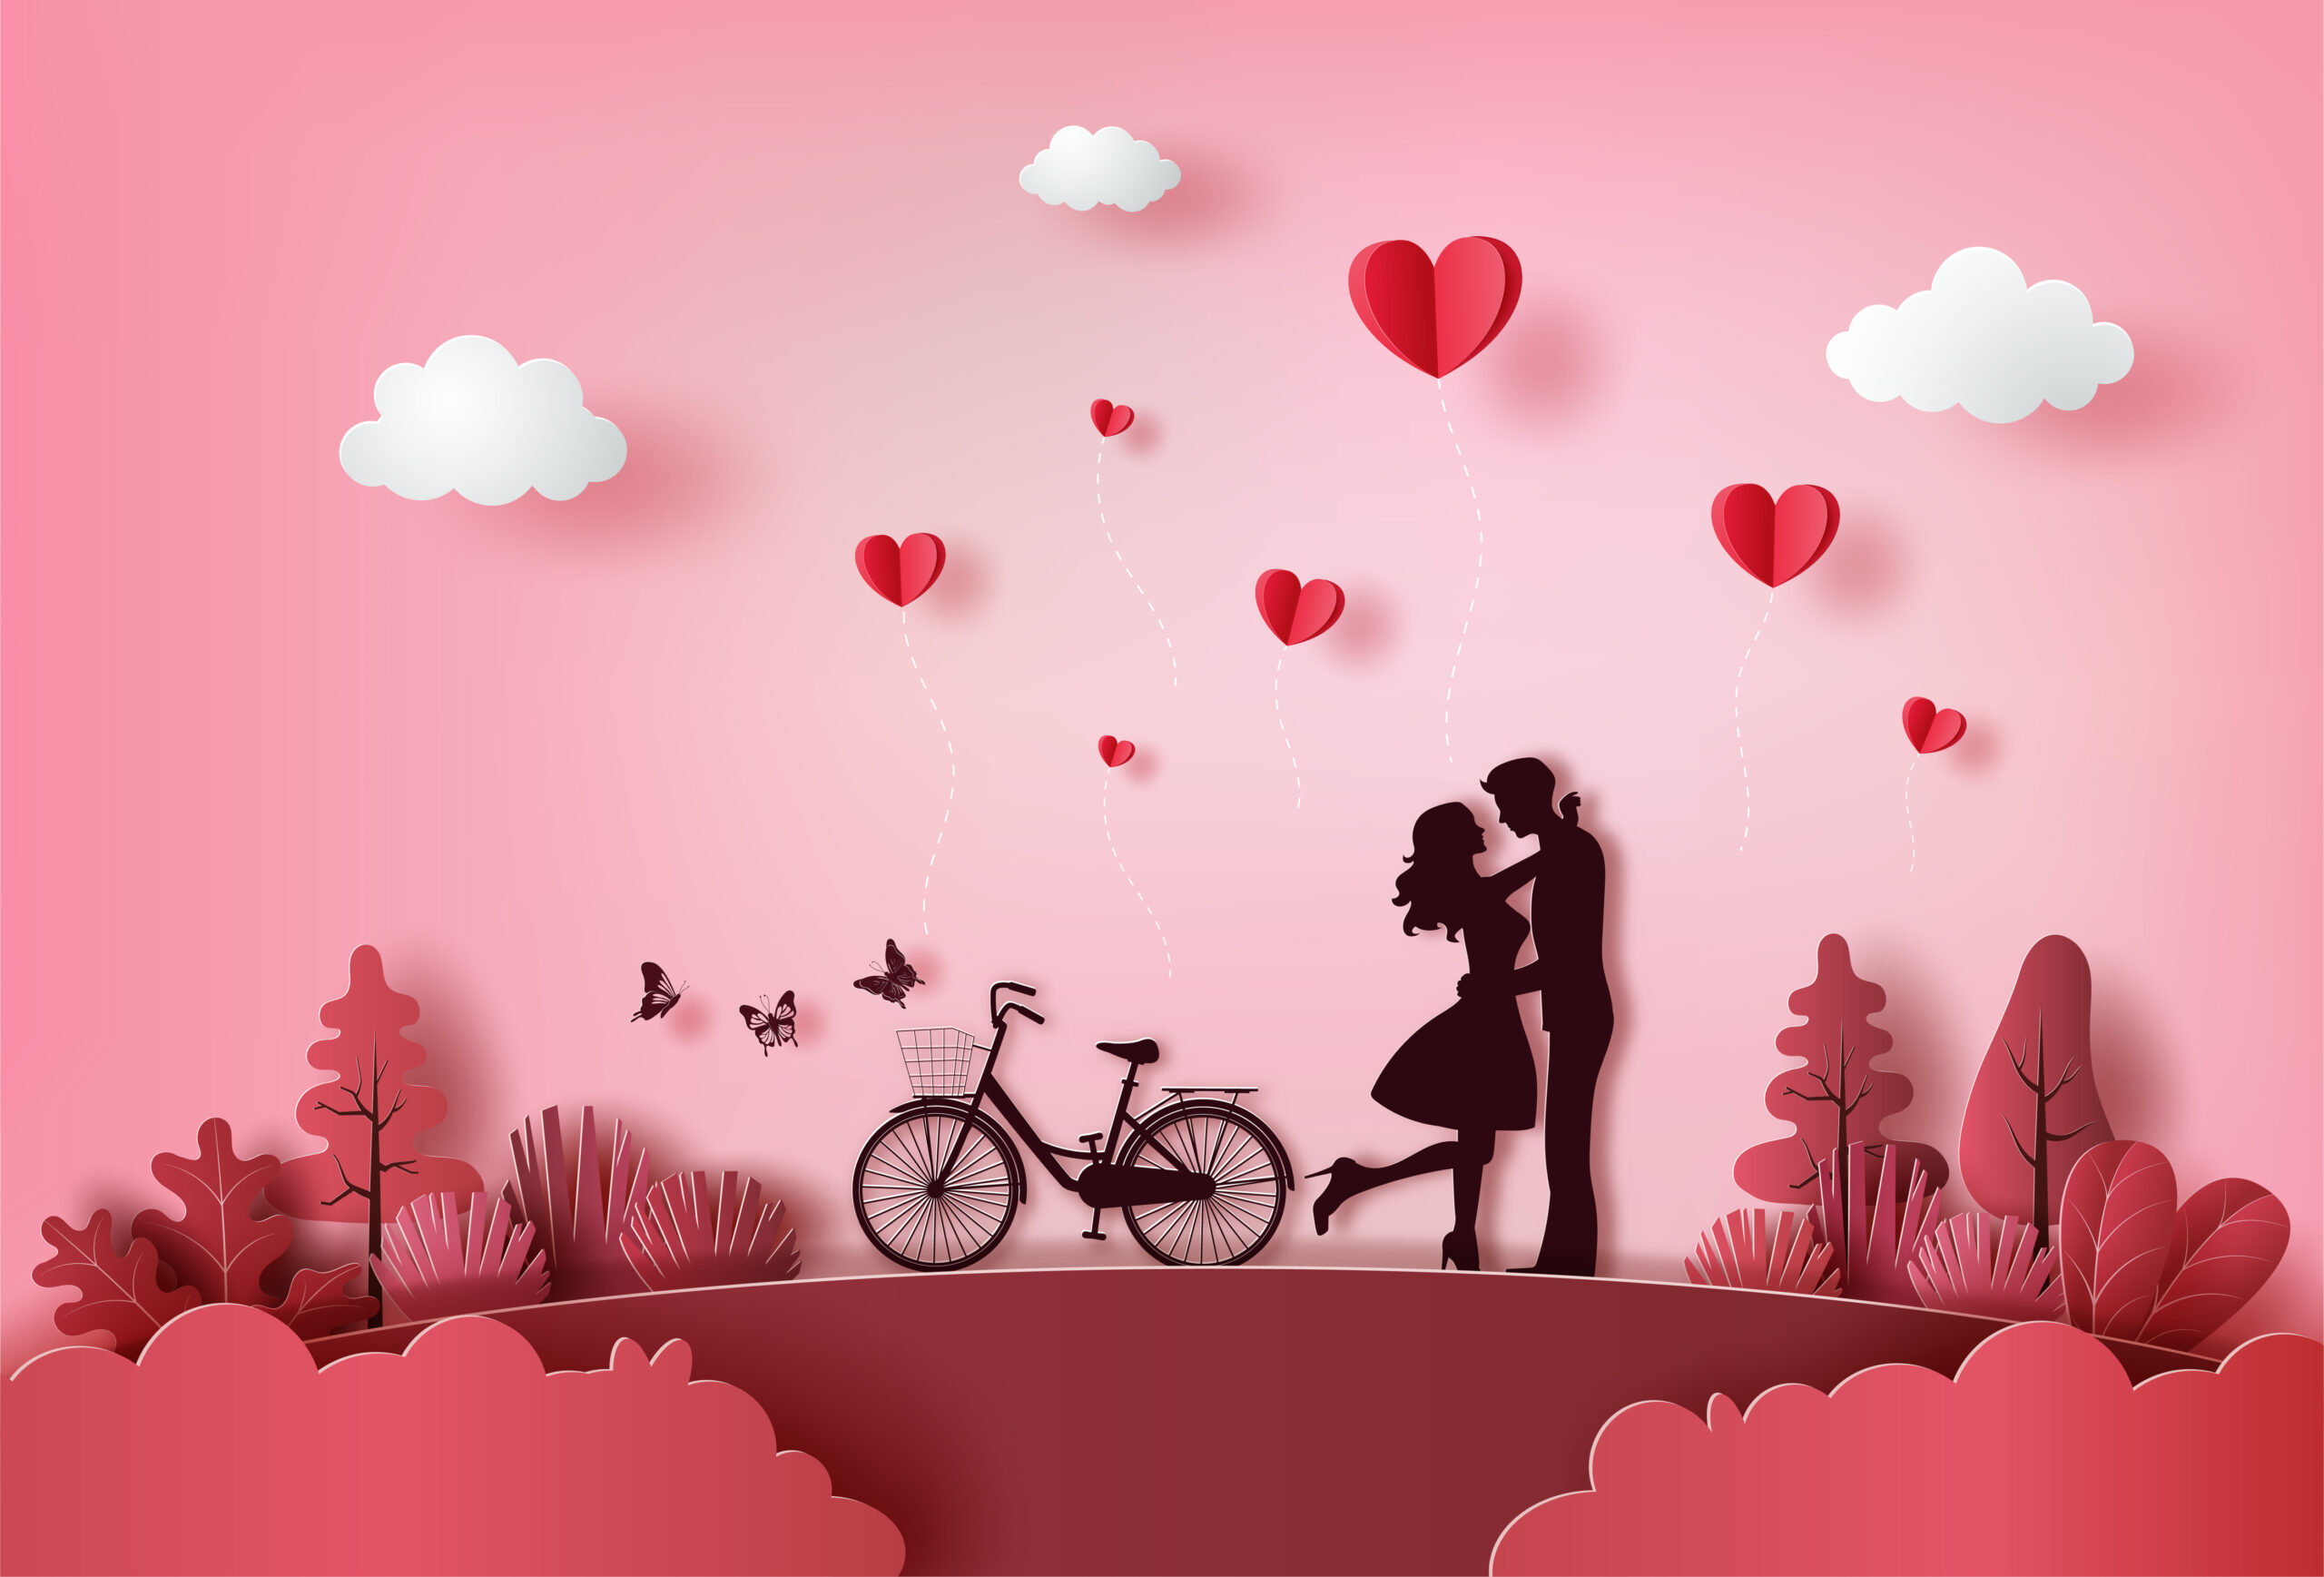 Cute couple in love hugging with many hearts floating.